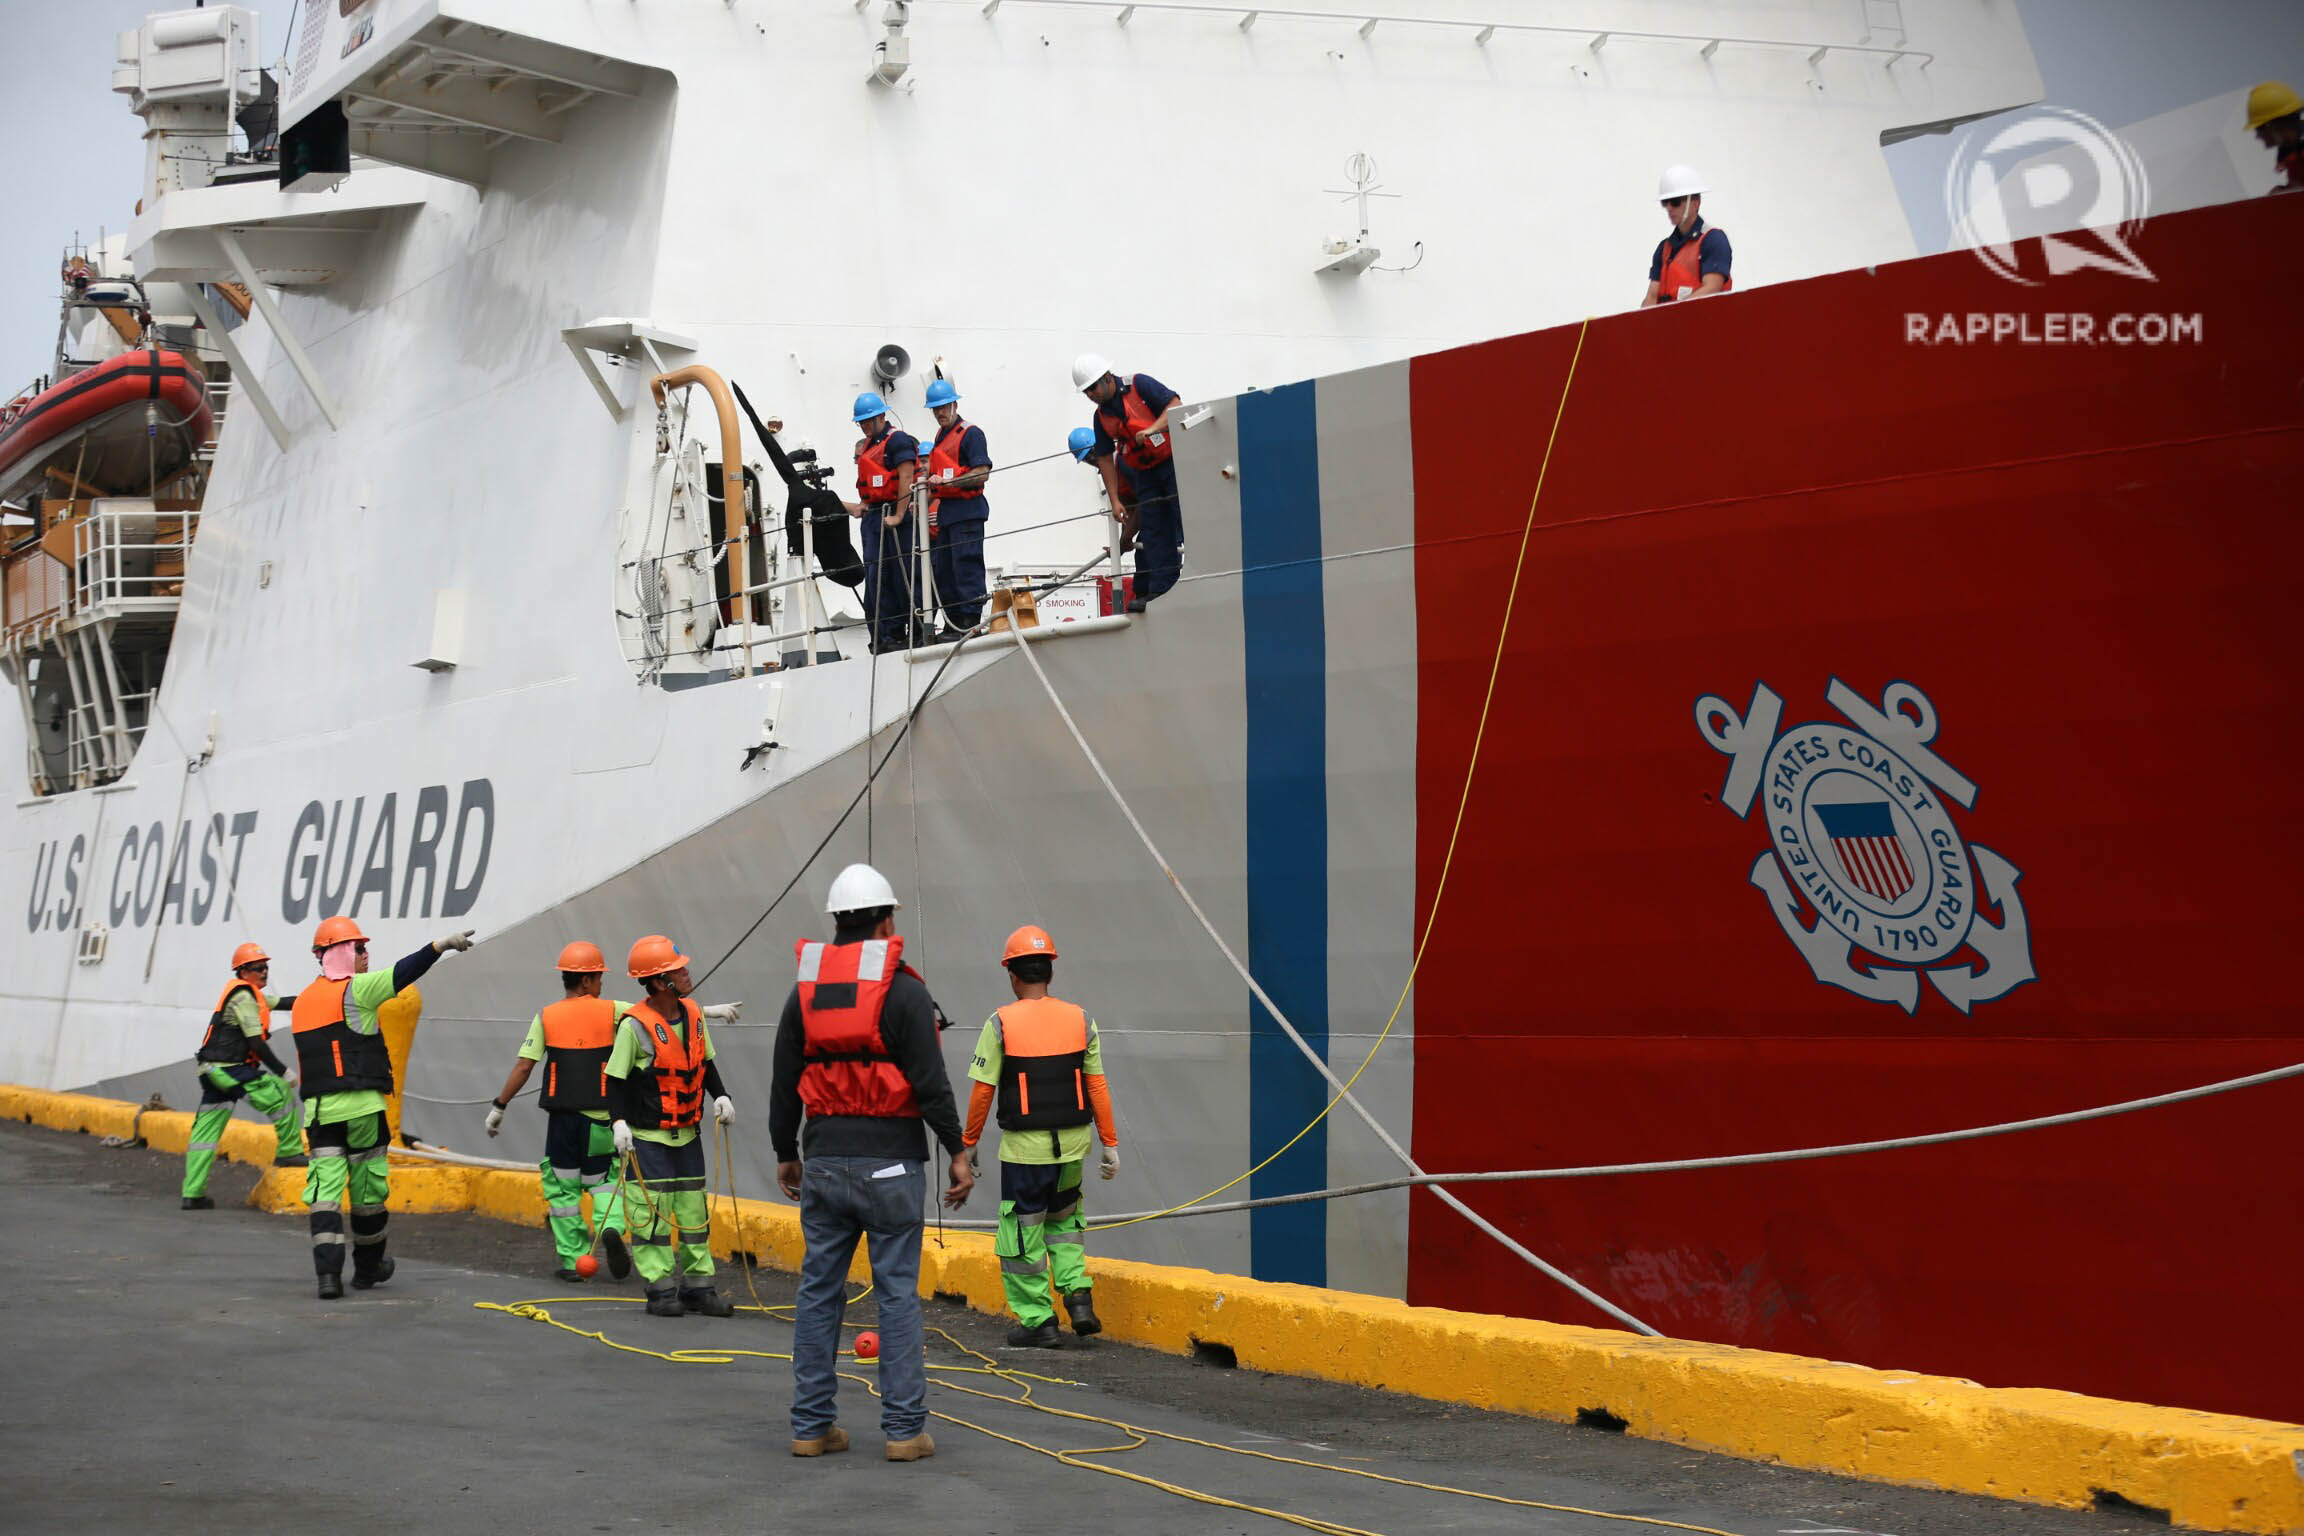 PUSH BACK. The United States Coast Guard National Security Cutter Bertholf docks at the Pier 15 during an arrival ceremony on May 15, 2019 in Manila after the search and rescue, maritime security and law enforcement exercise they conduct with the Philippine Coast Guard near Bajo de Masinloc in West Philippine Sea. The visit is part of deployment in the Indo-Pacific under the tactical control of the commander of US 7th fleet. PHOTO BY INOUE JAENA/Rappler